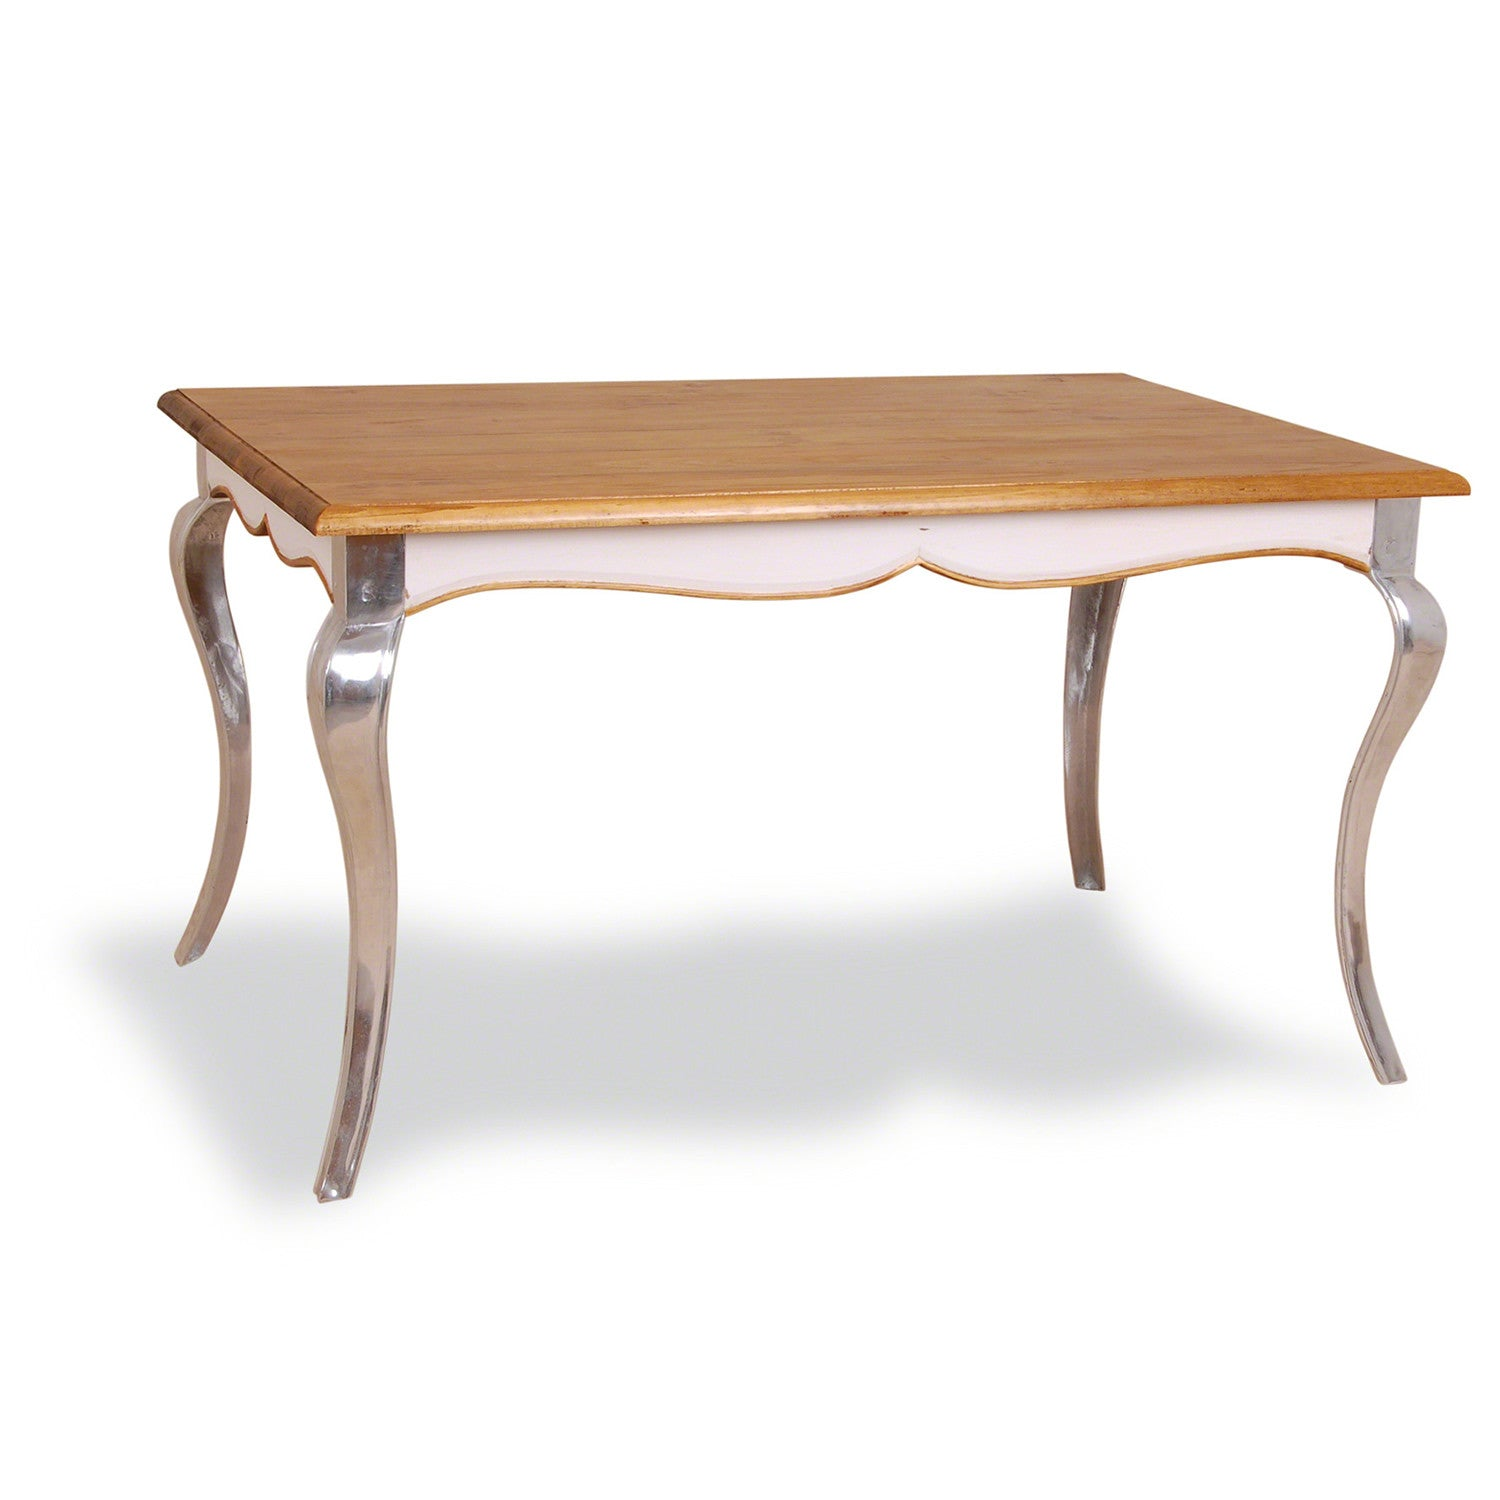 Shabby Dining Table with Metal Legs Shropshire Design